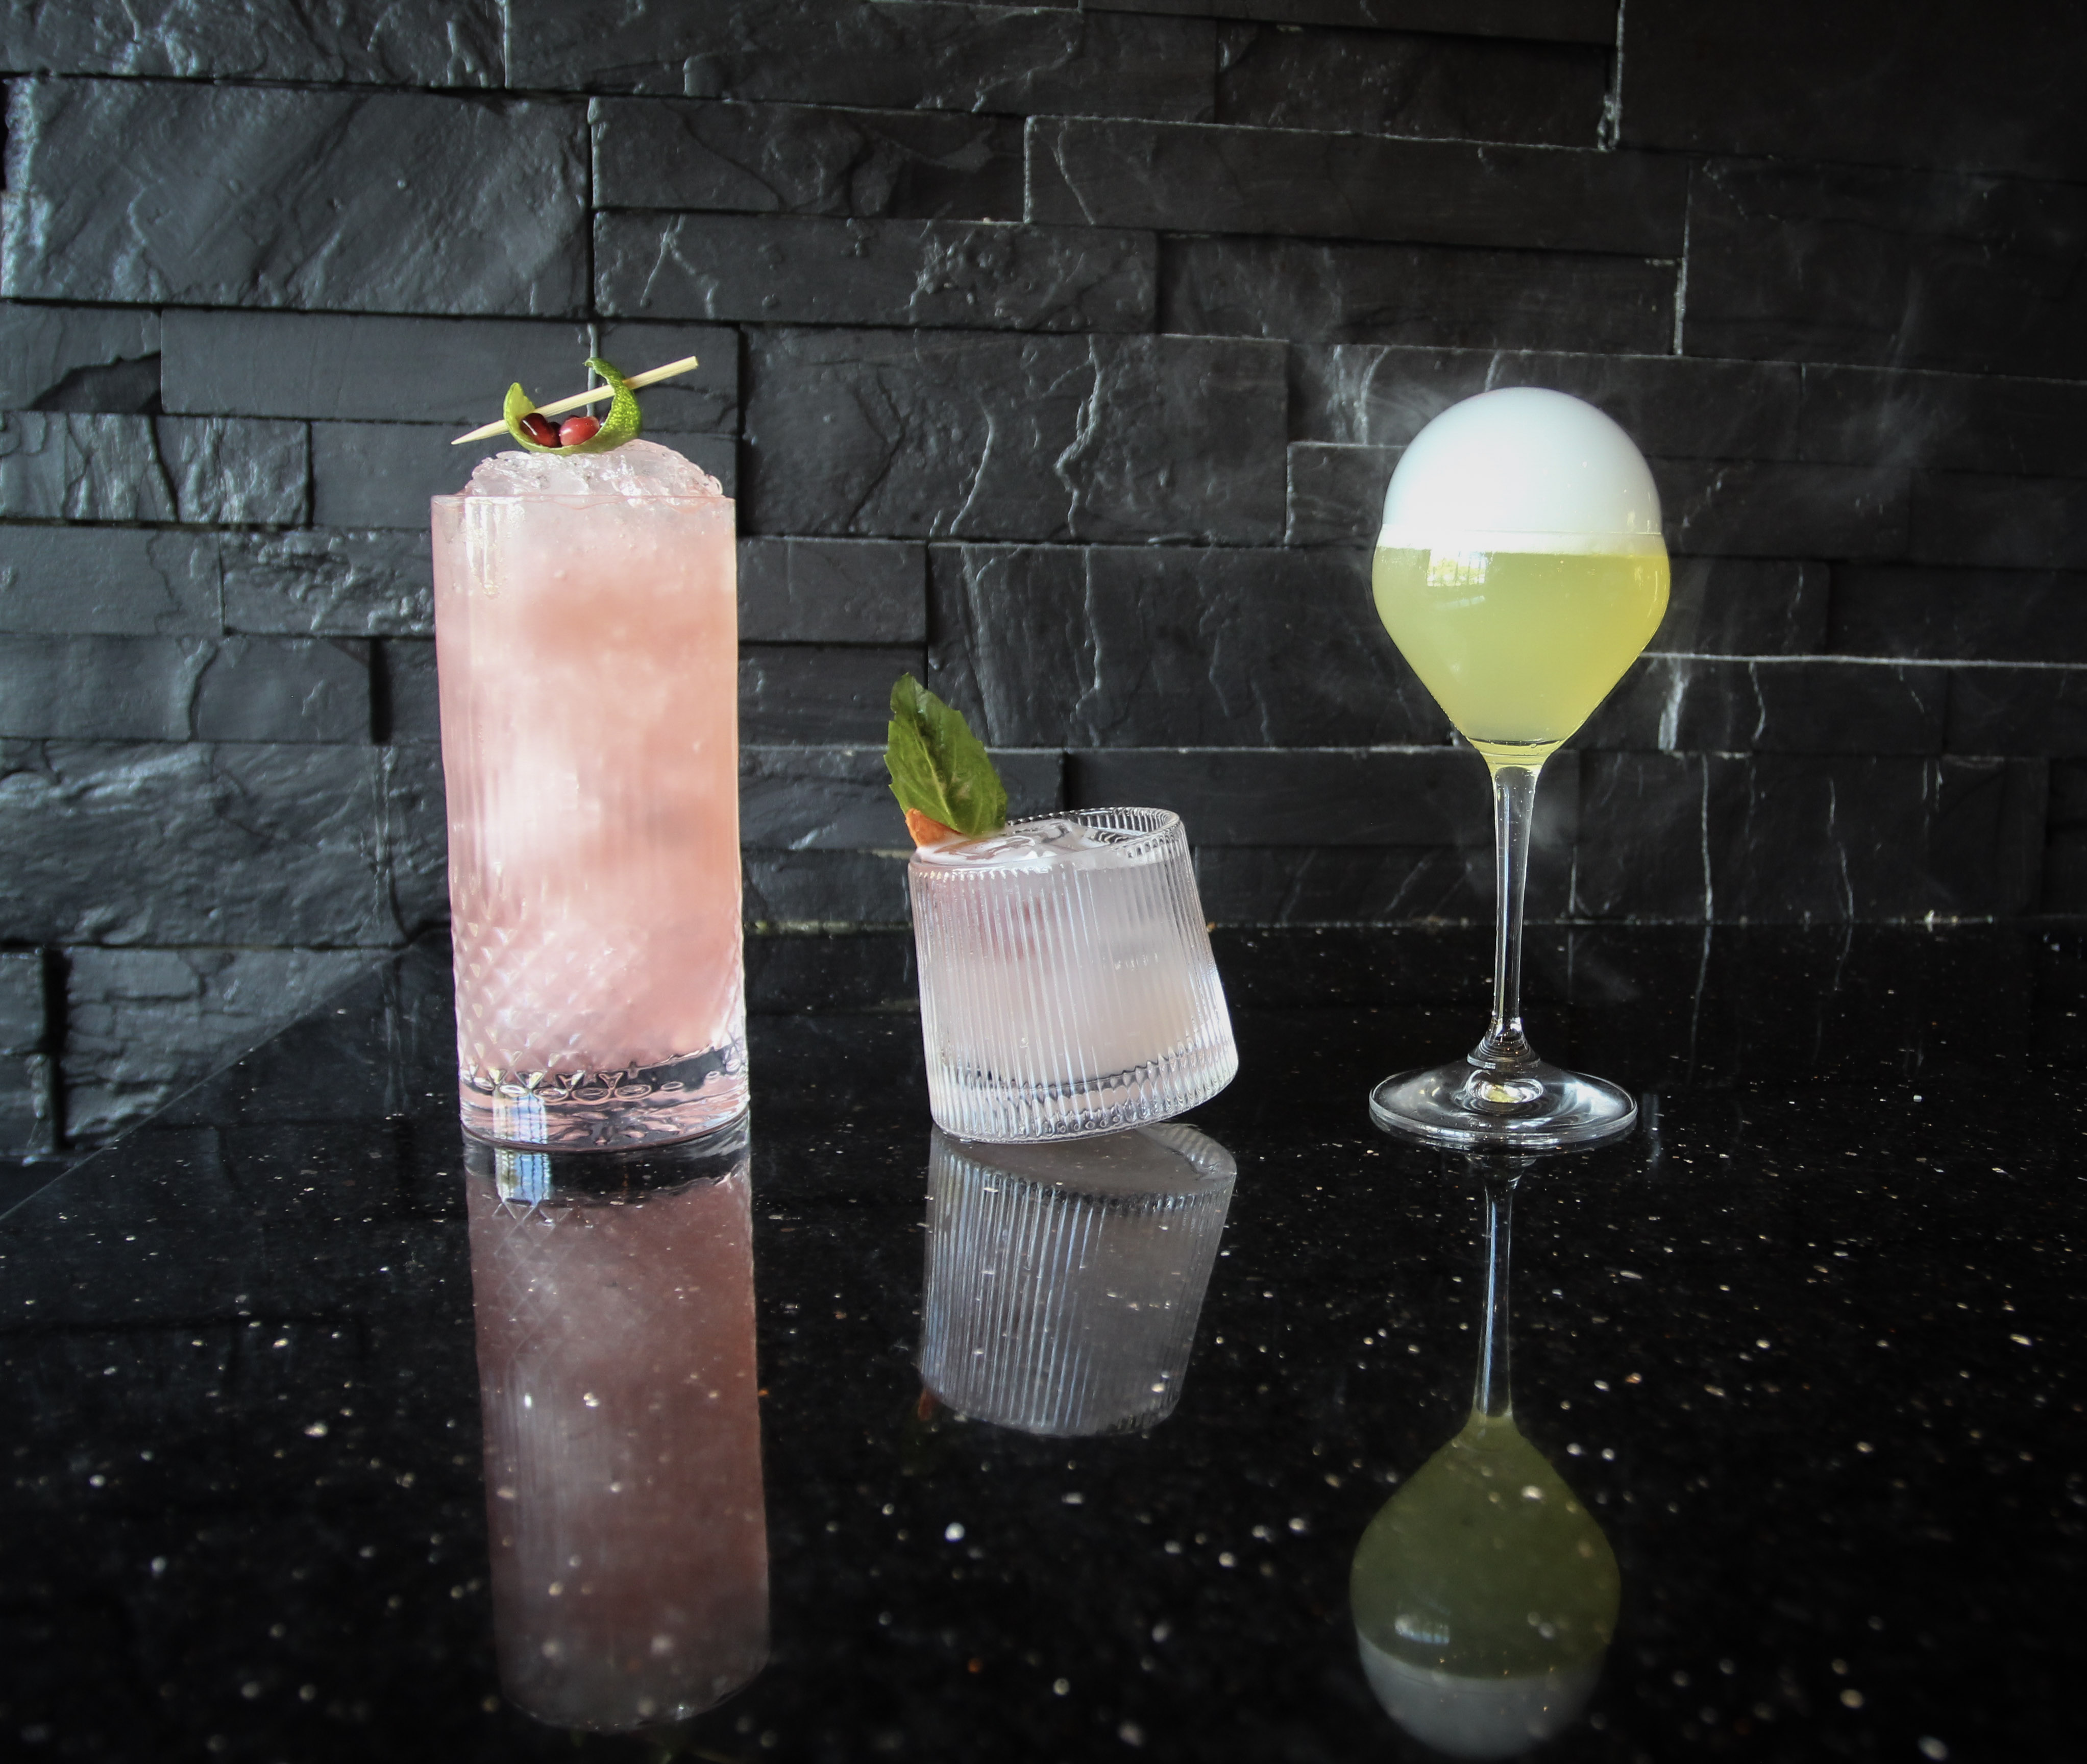 Three cocktails — one pink, one lighter pink, and one electric lime green —sit atop a black table, and are backdropped by a black wall.